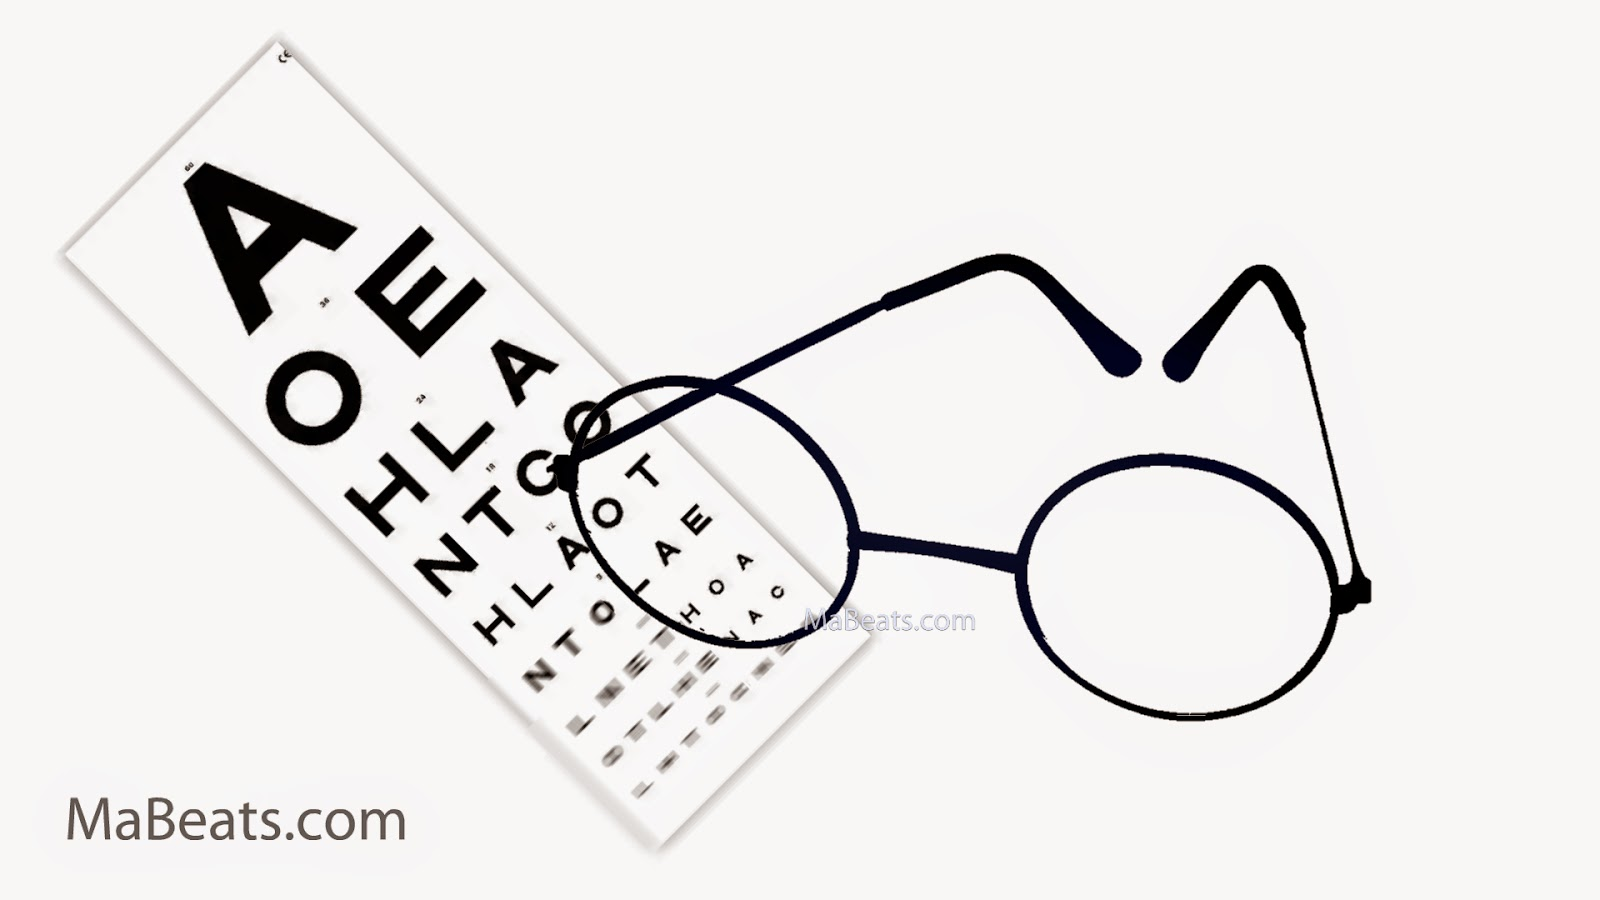 Wearing Glasses - you are one eye test away